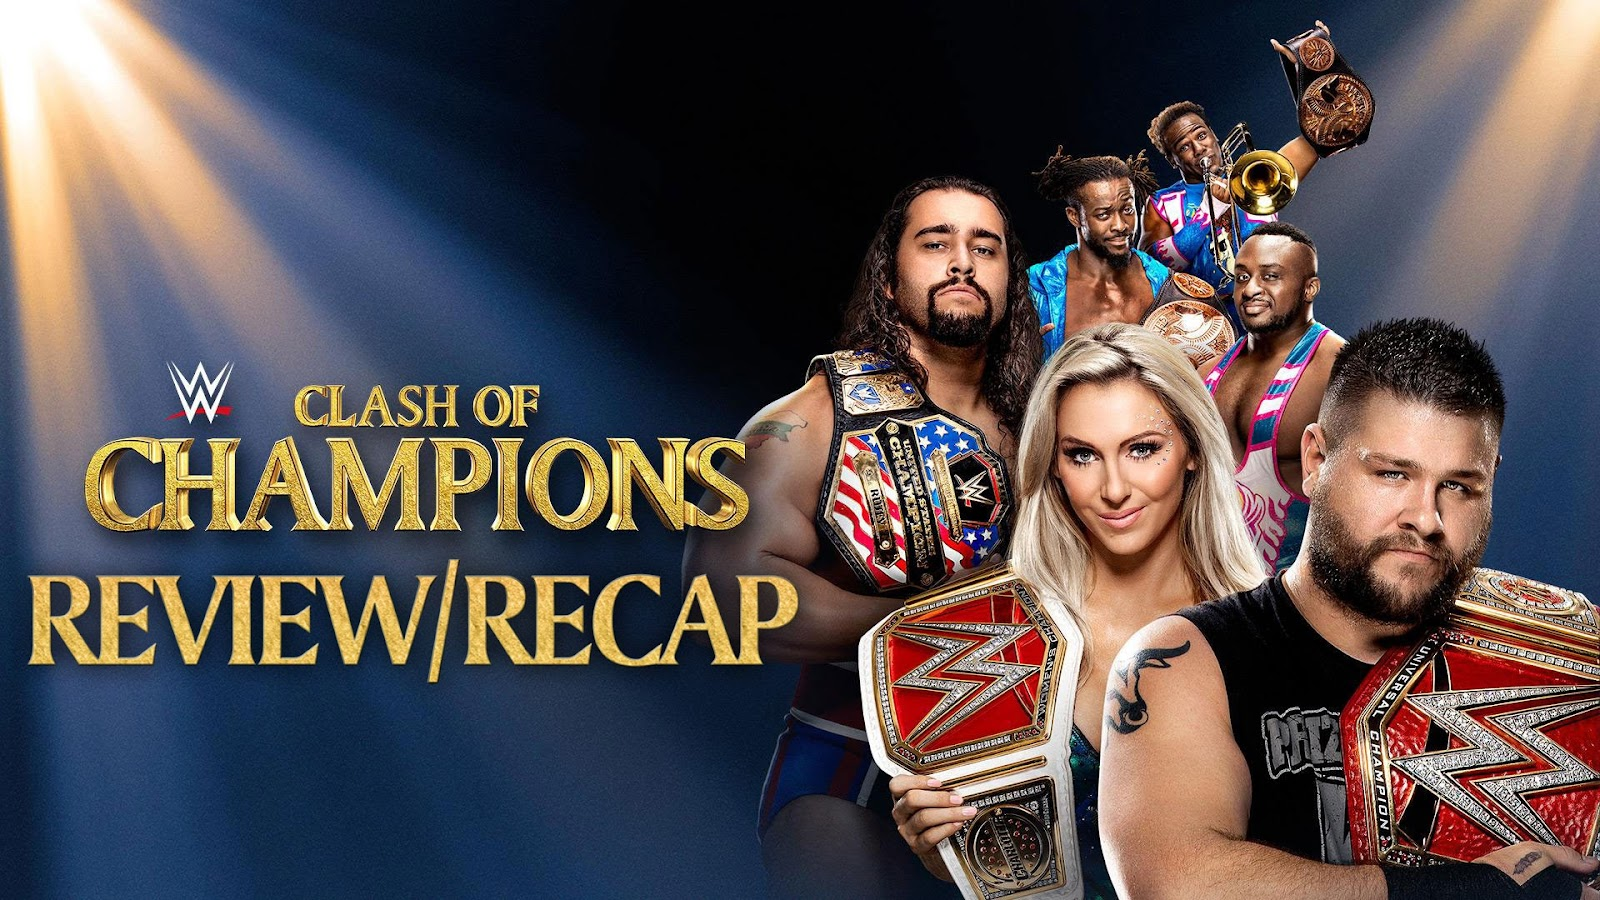 WWE Clash of Champions 2016 Recap and Review Podcast